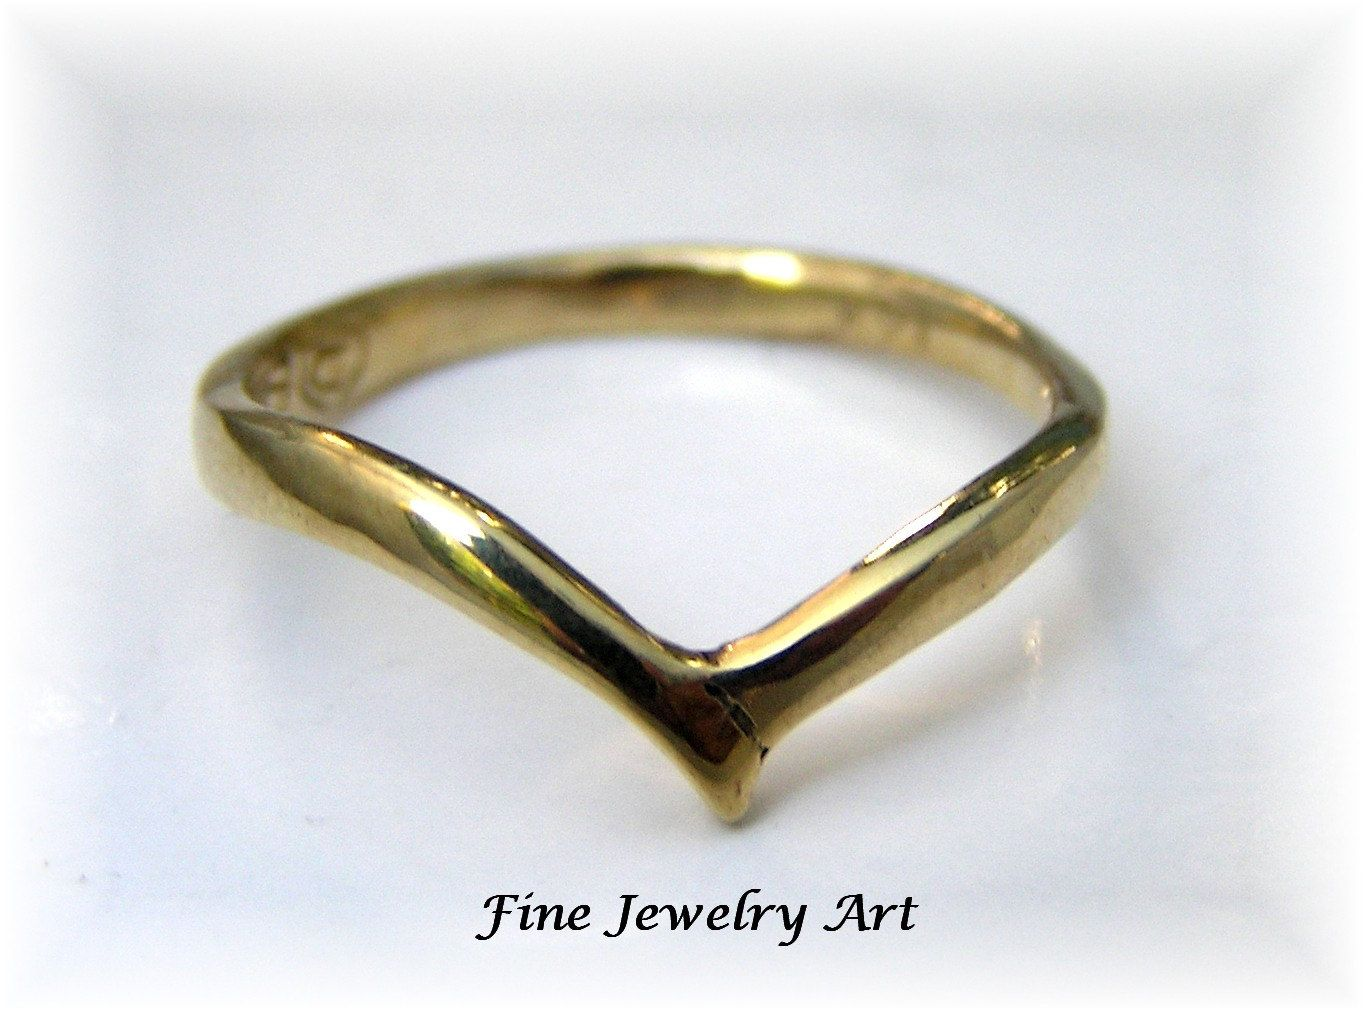 SALE - Handmade Simple Thin Gold Ring Bird Wings Design. $118.00 ...